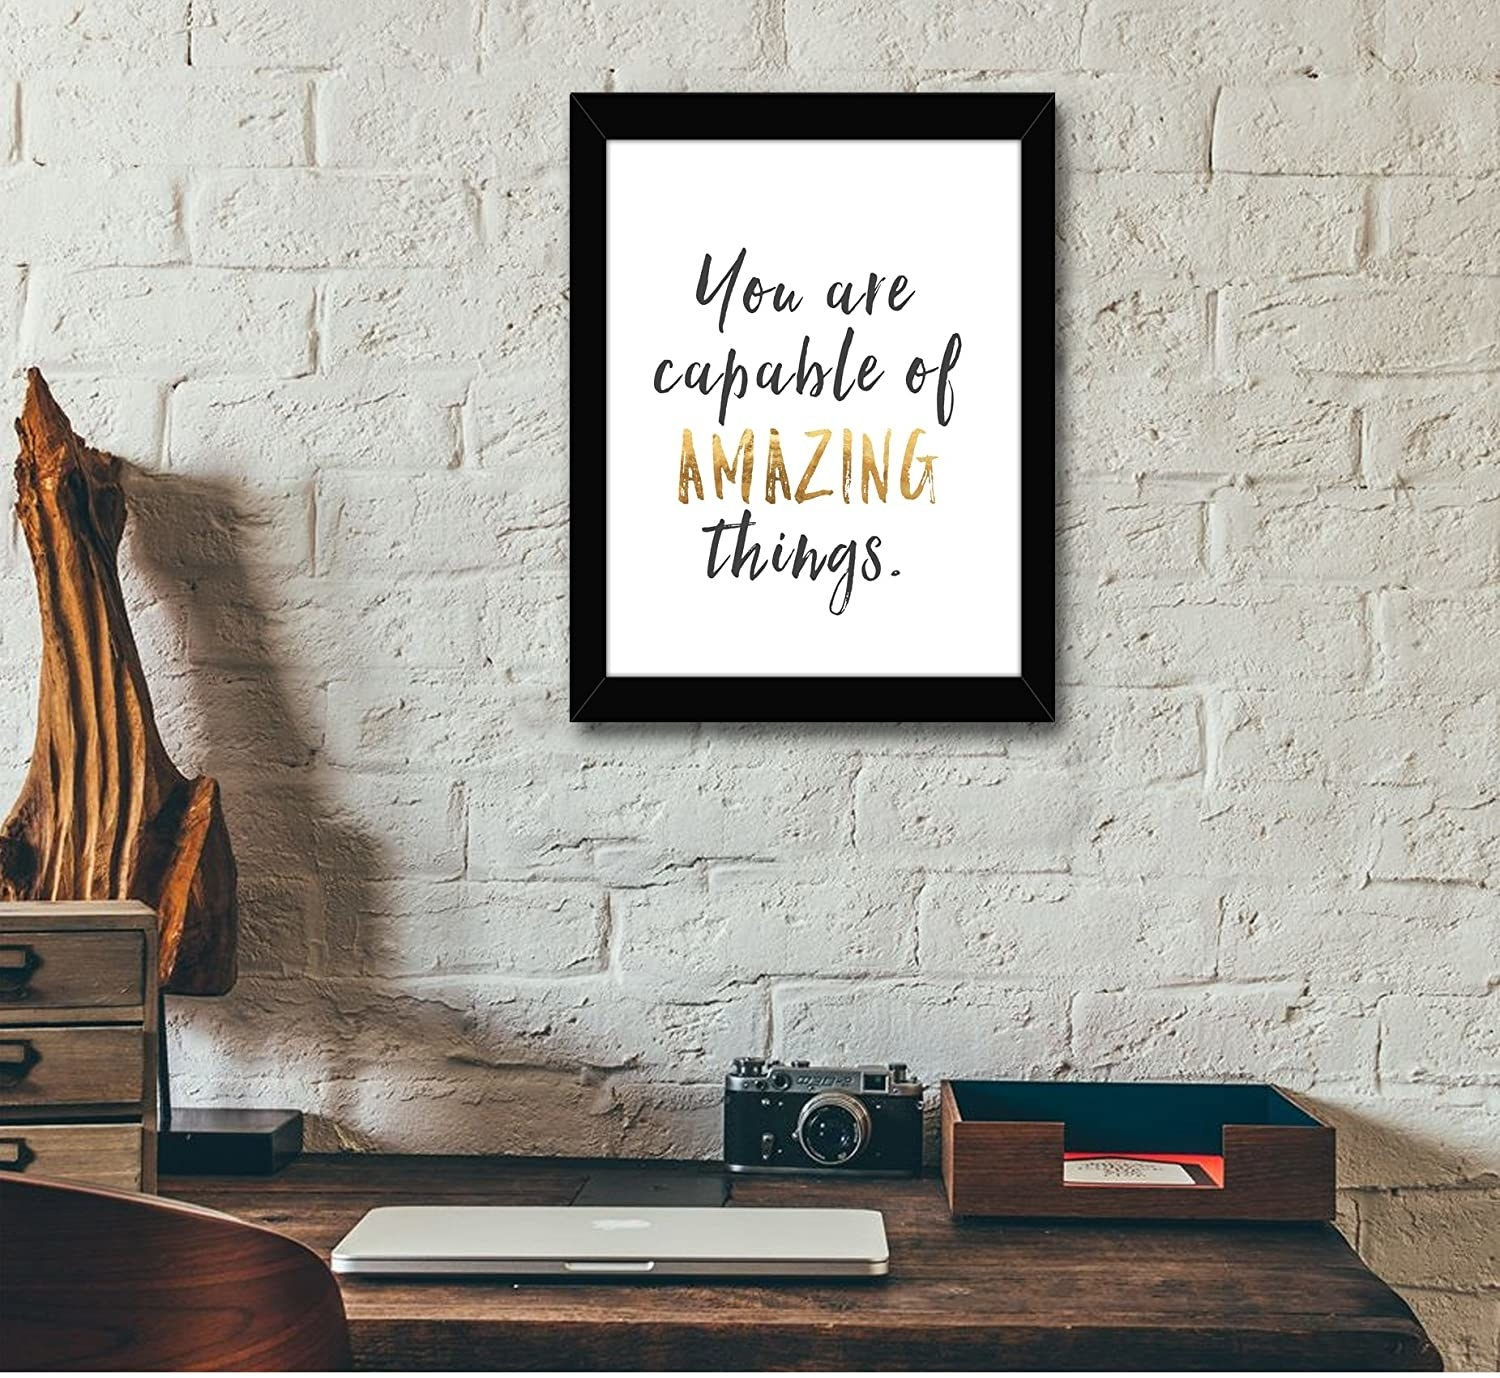 """The frame reads, """"You are capable of amazing things"""" in gold and black text."""